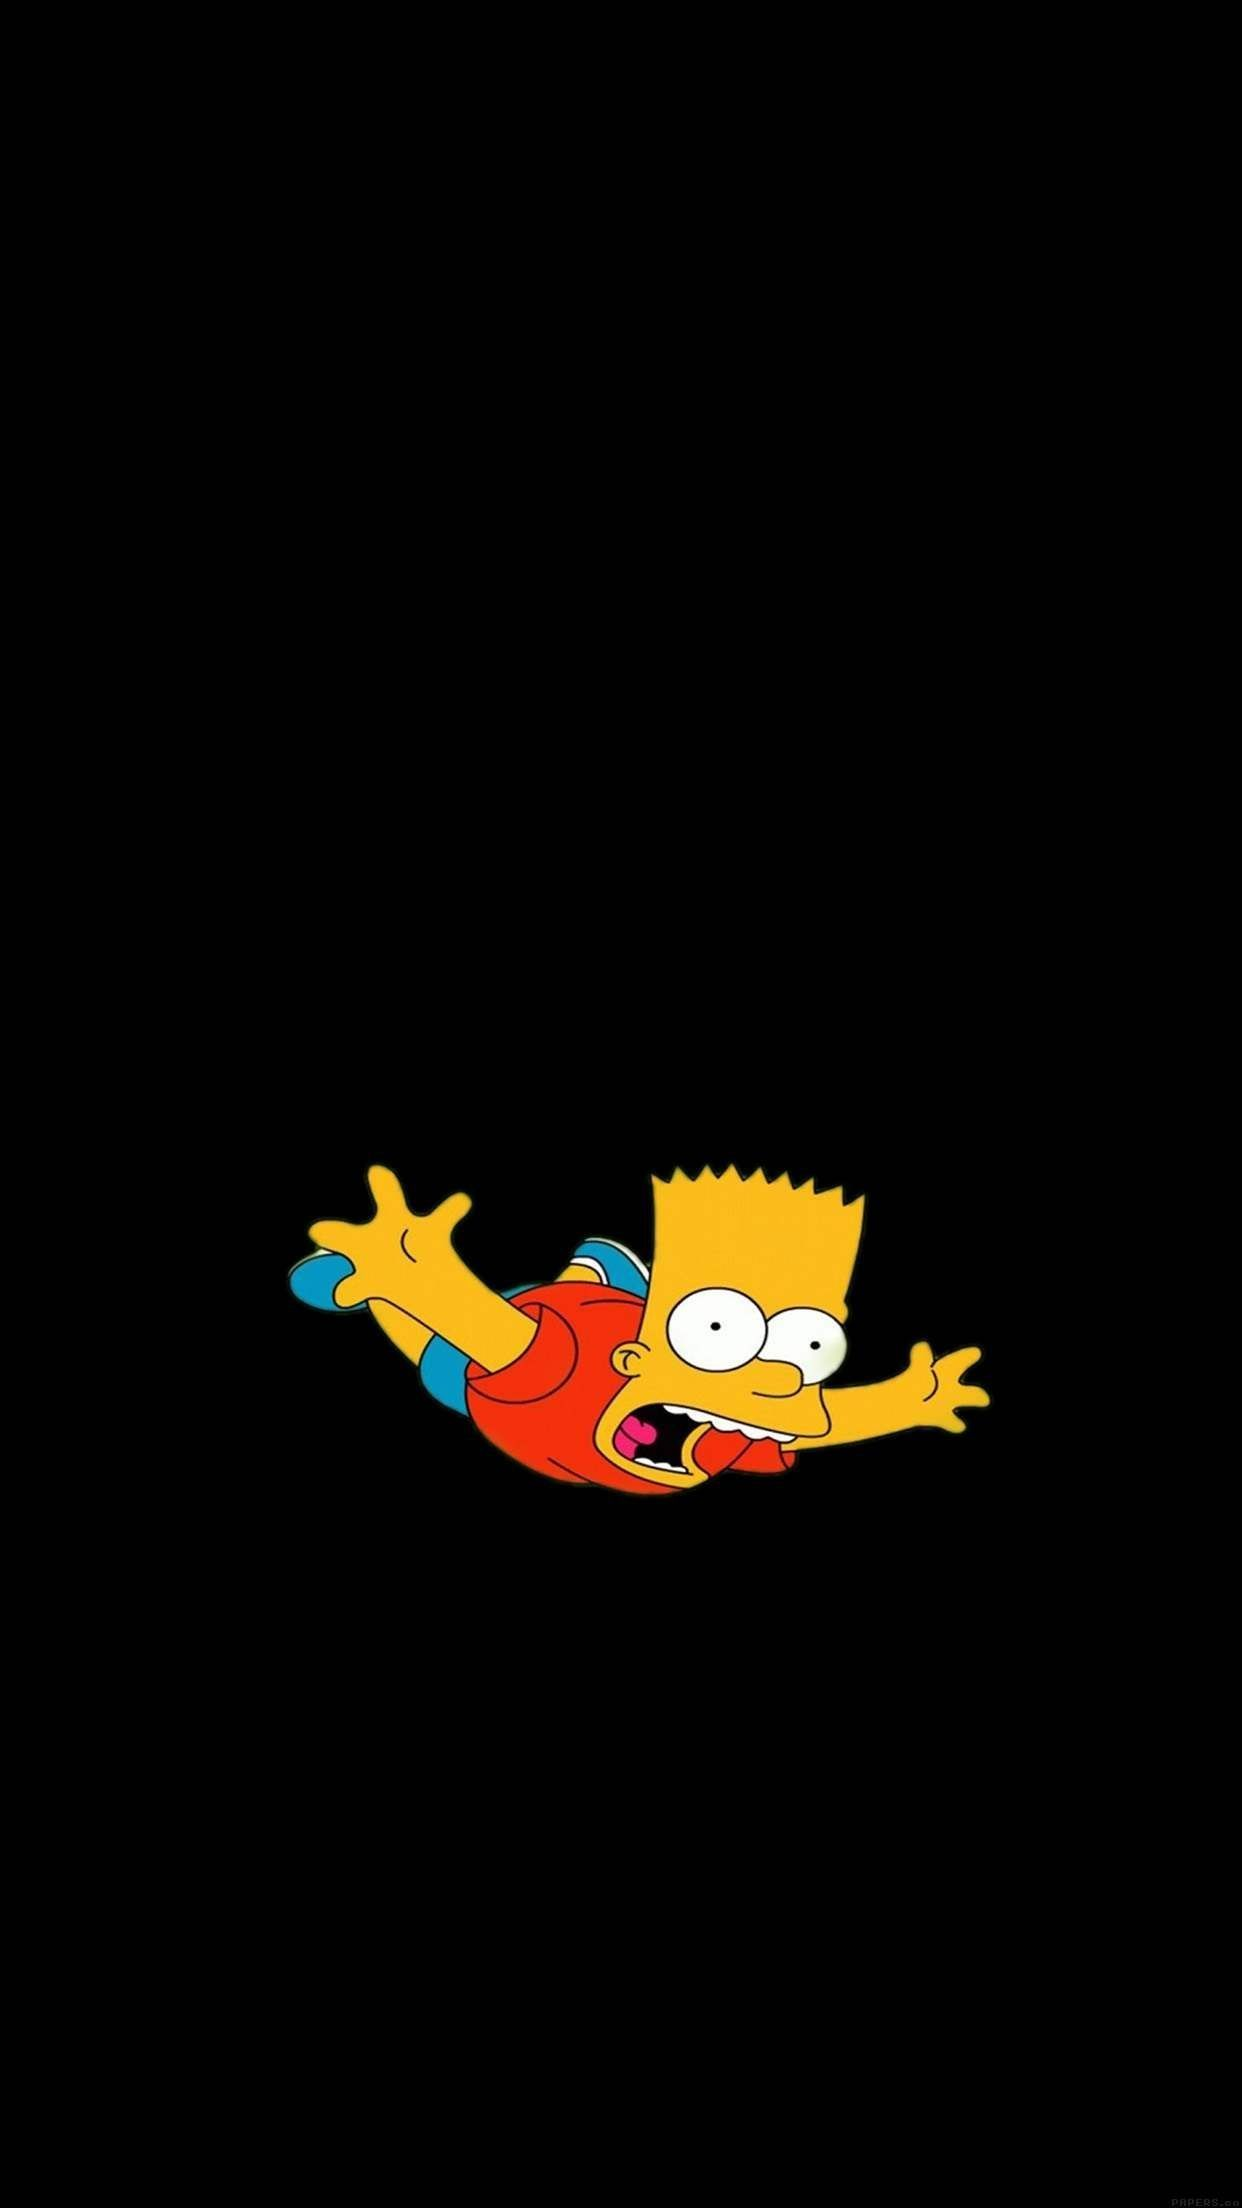 Aesthetic Bart Simpson Iphone Wallpapers Top Free Within Wallpaper Bart Simpsons In 2020 Simpson Wallpaper Iphone Best Iphone Wallpapers Iphone Wallpaper Hipster